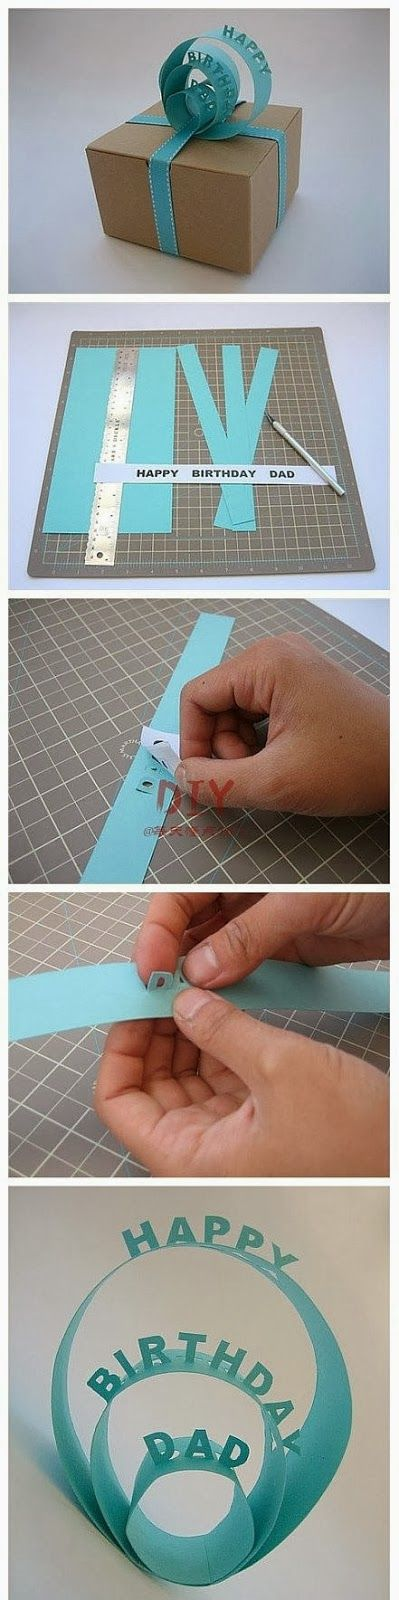 My DIY Projects: Birthday gift package decorations